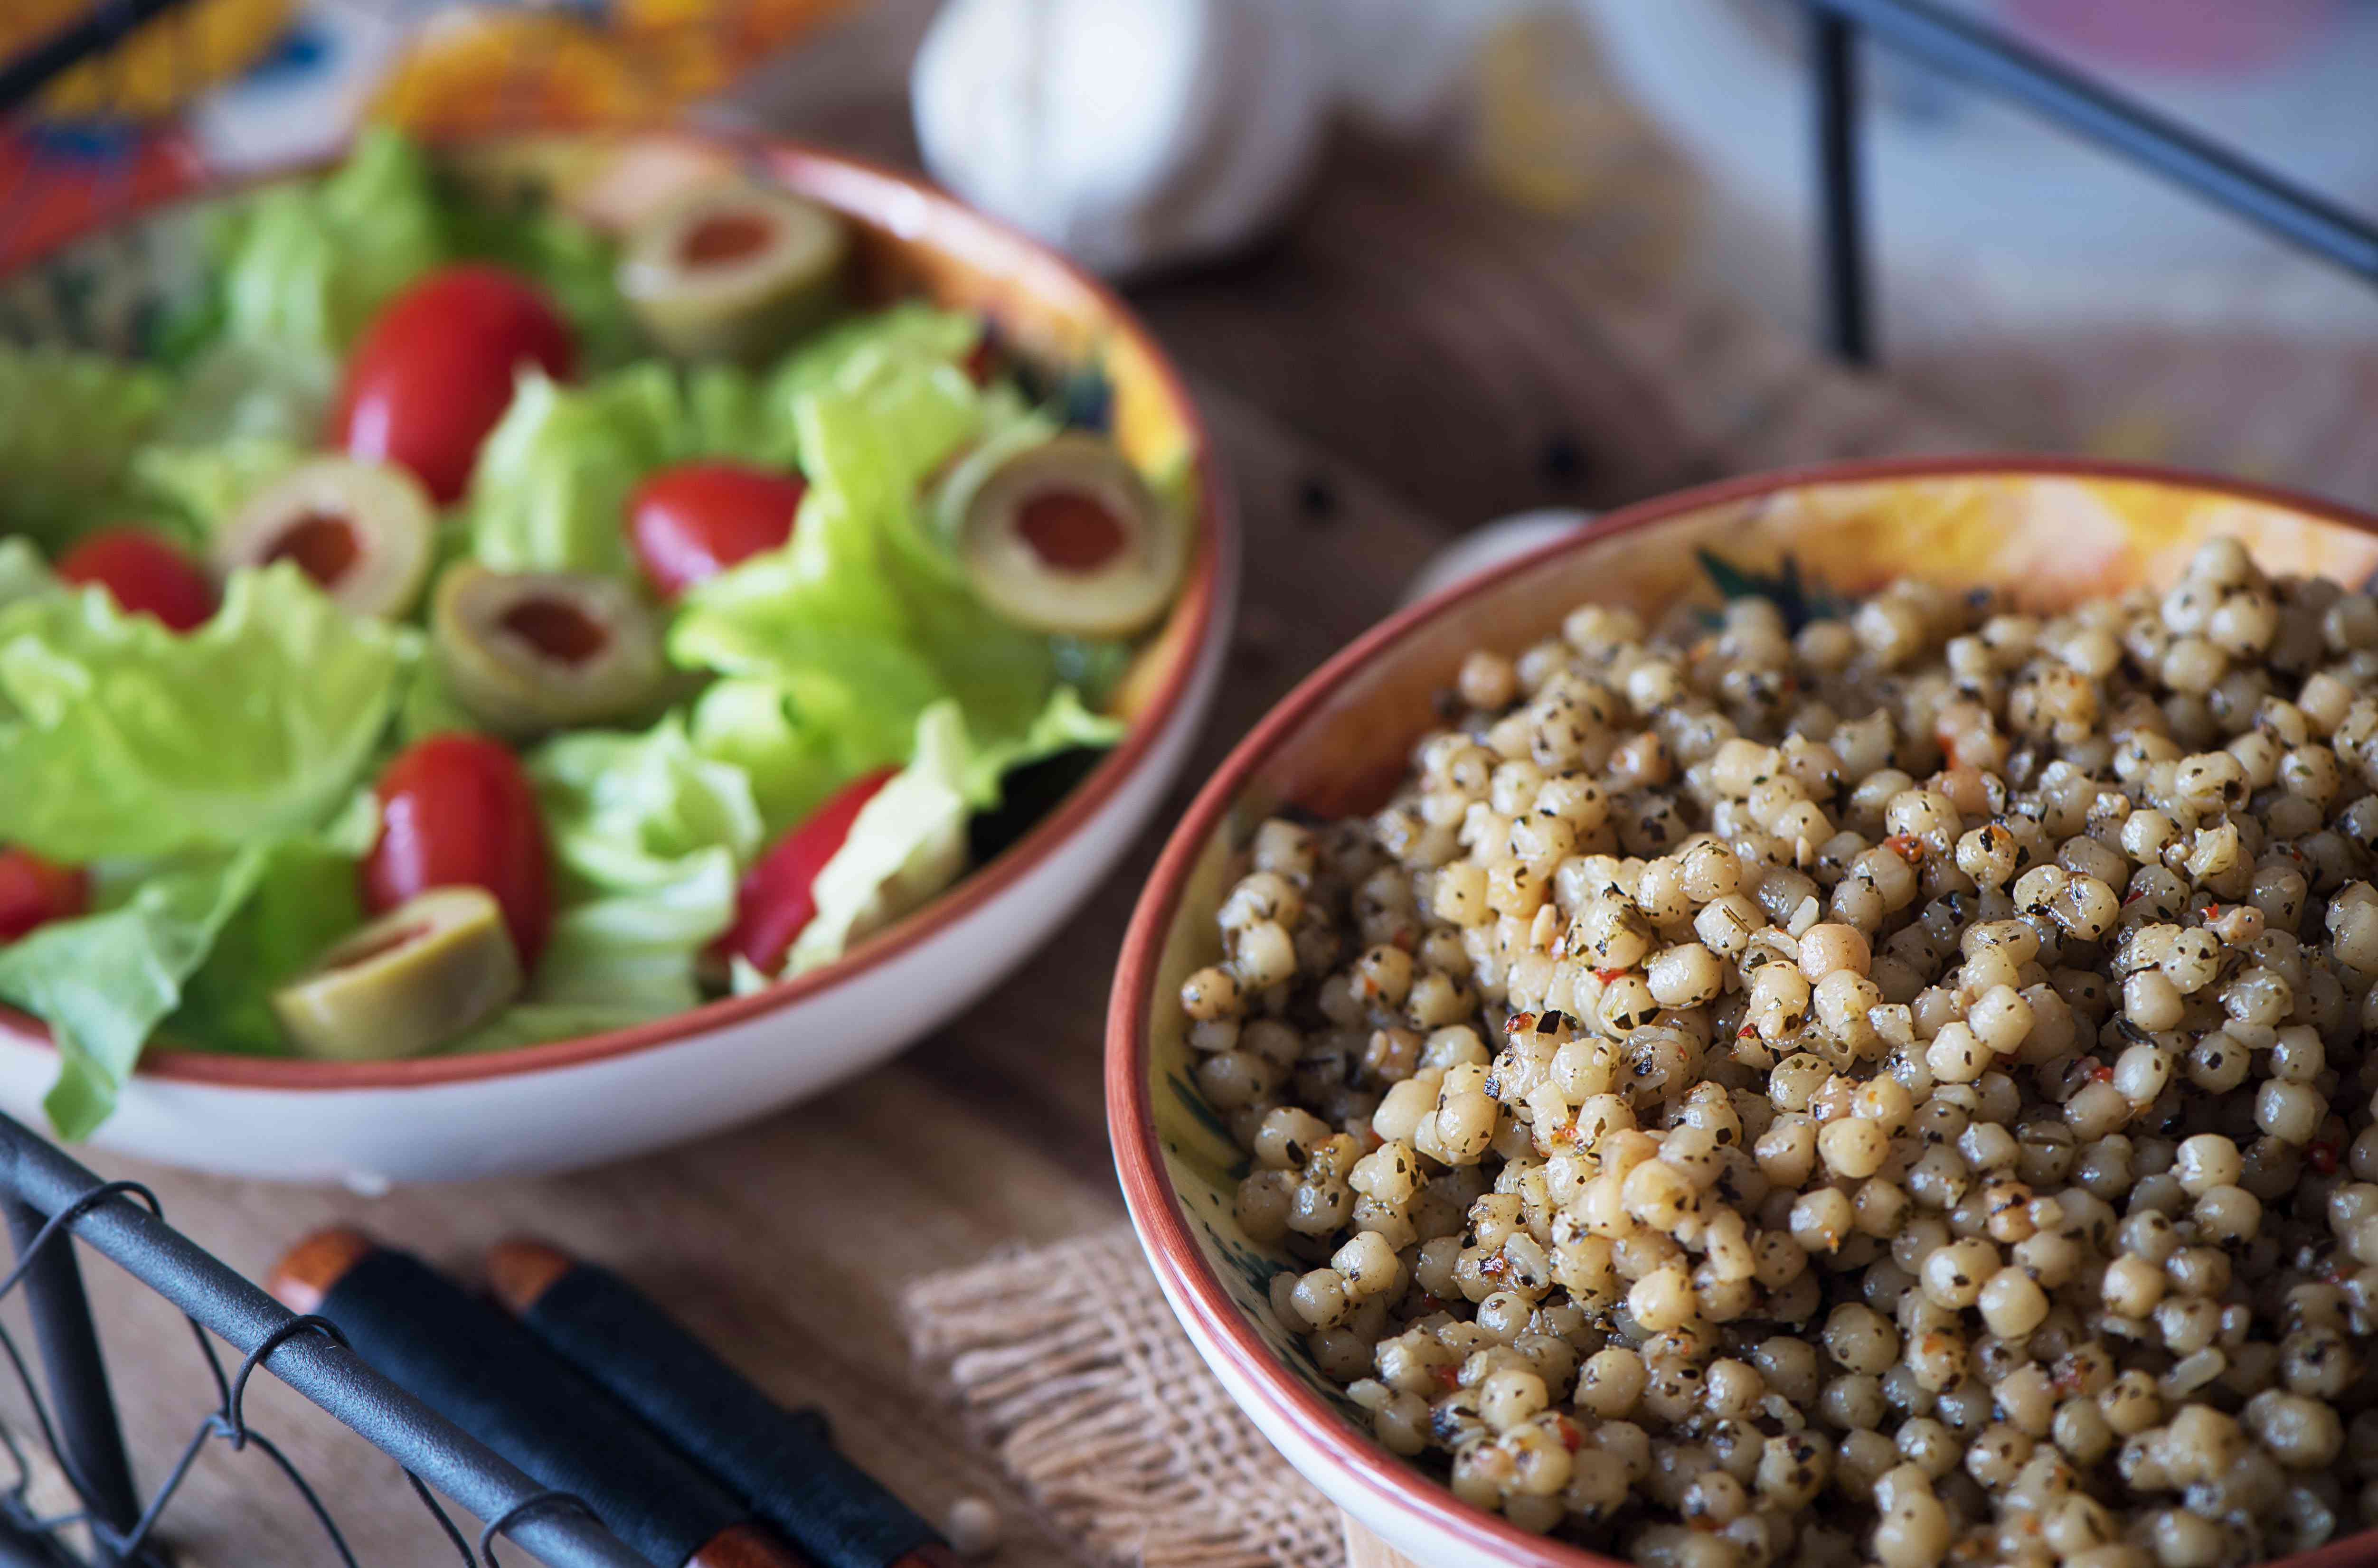 Couscous and lettuce salad, tomatoes and olives